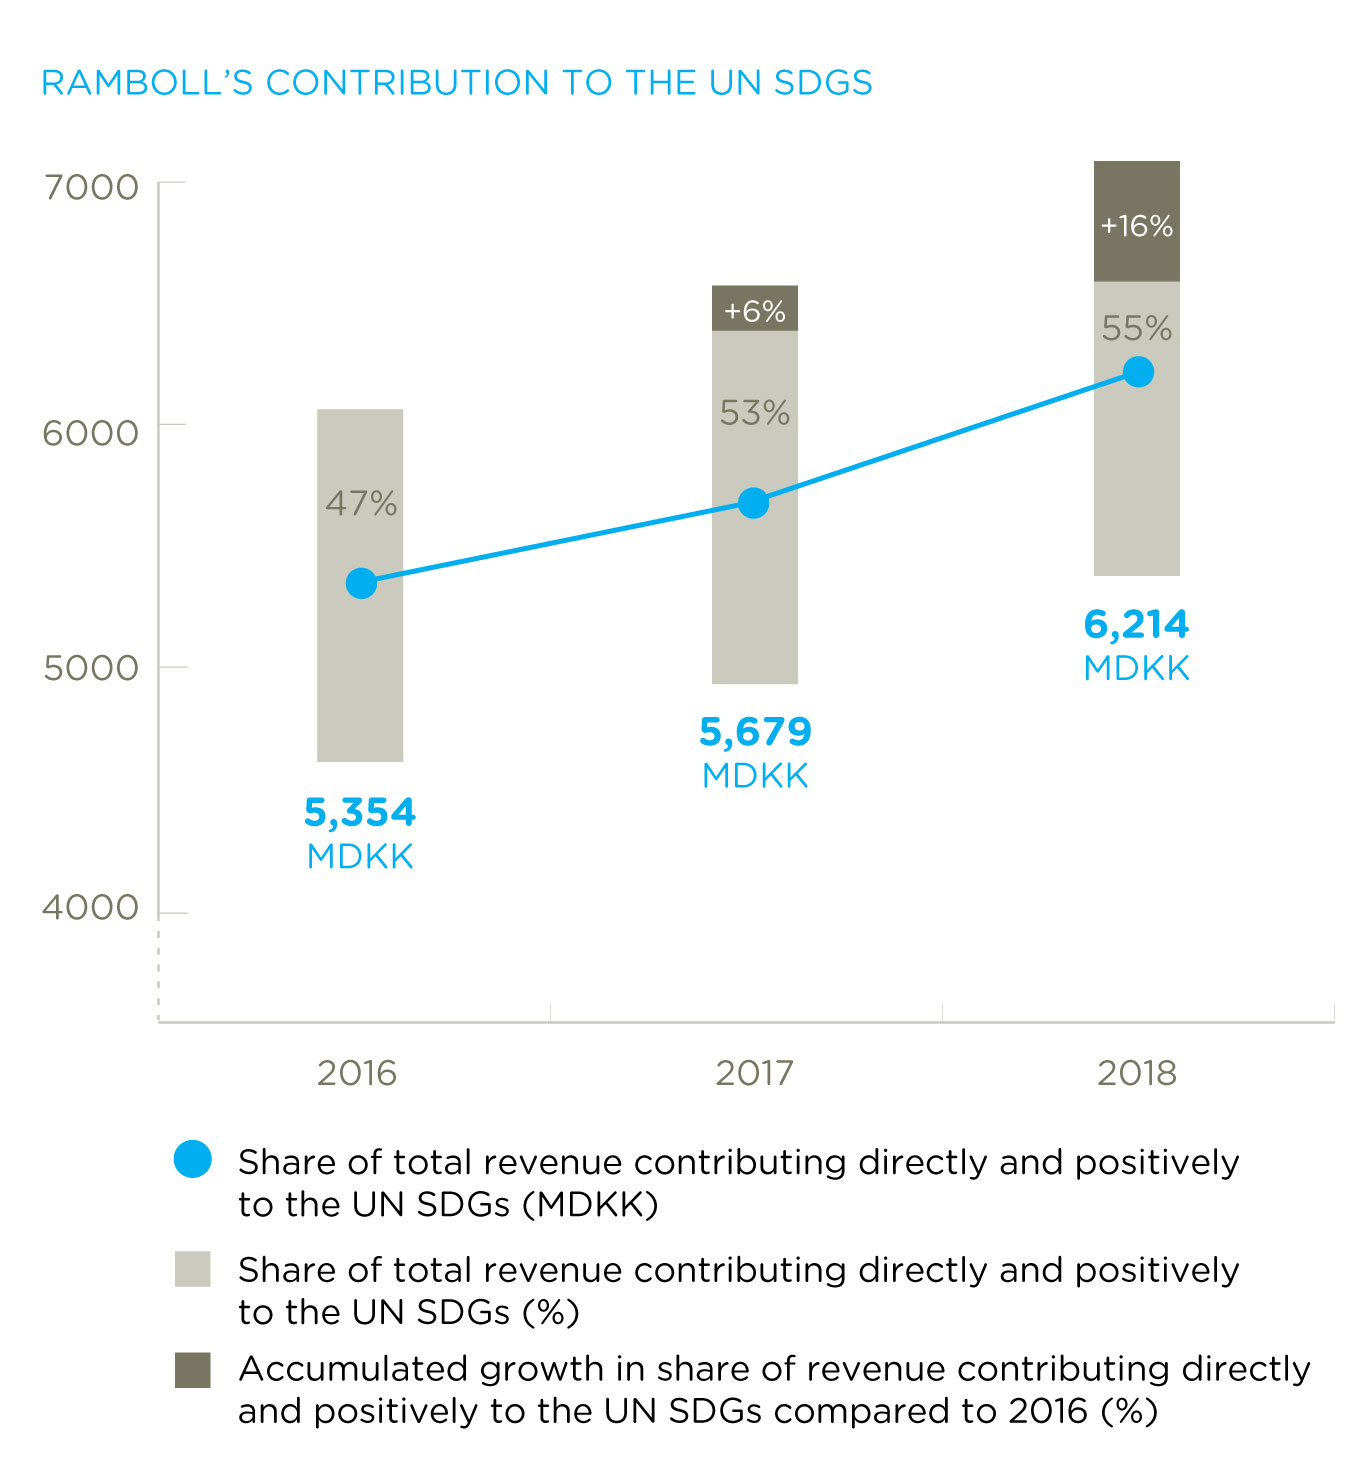 Ramboll's contribution to the UN SDGS